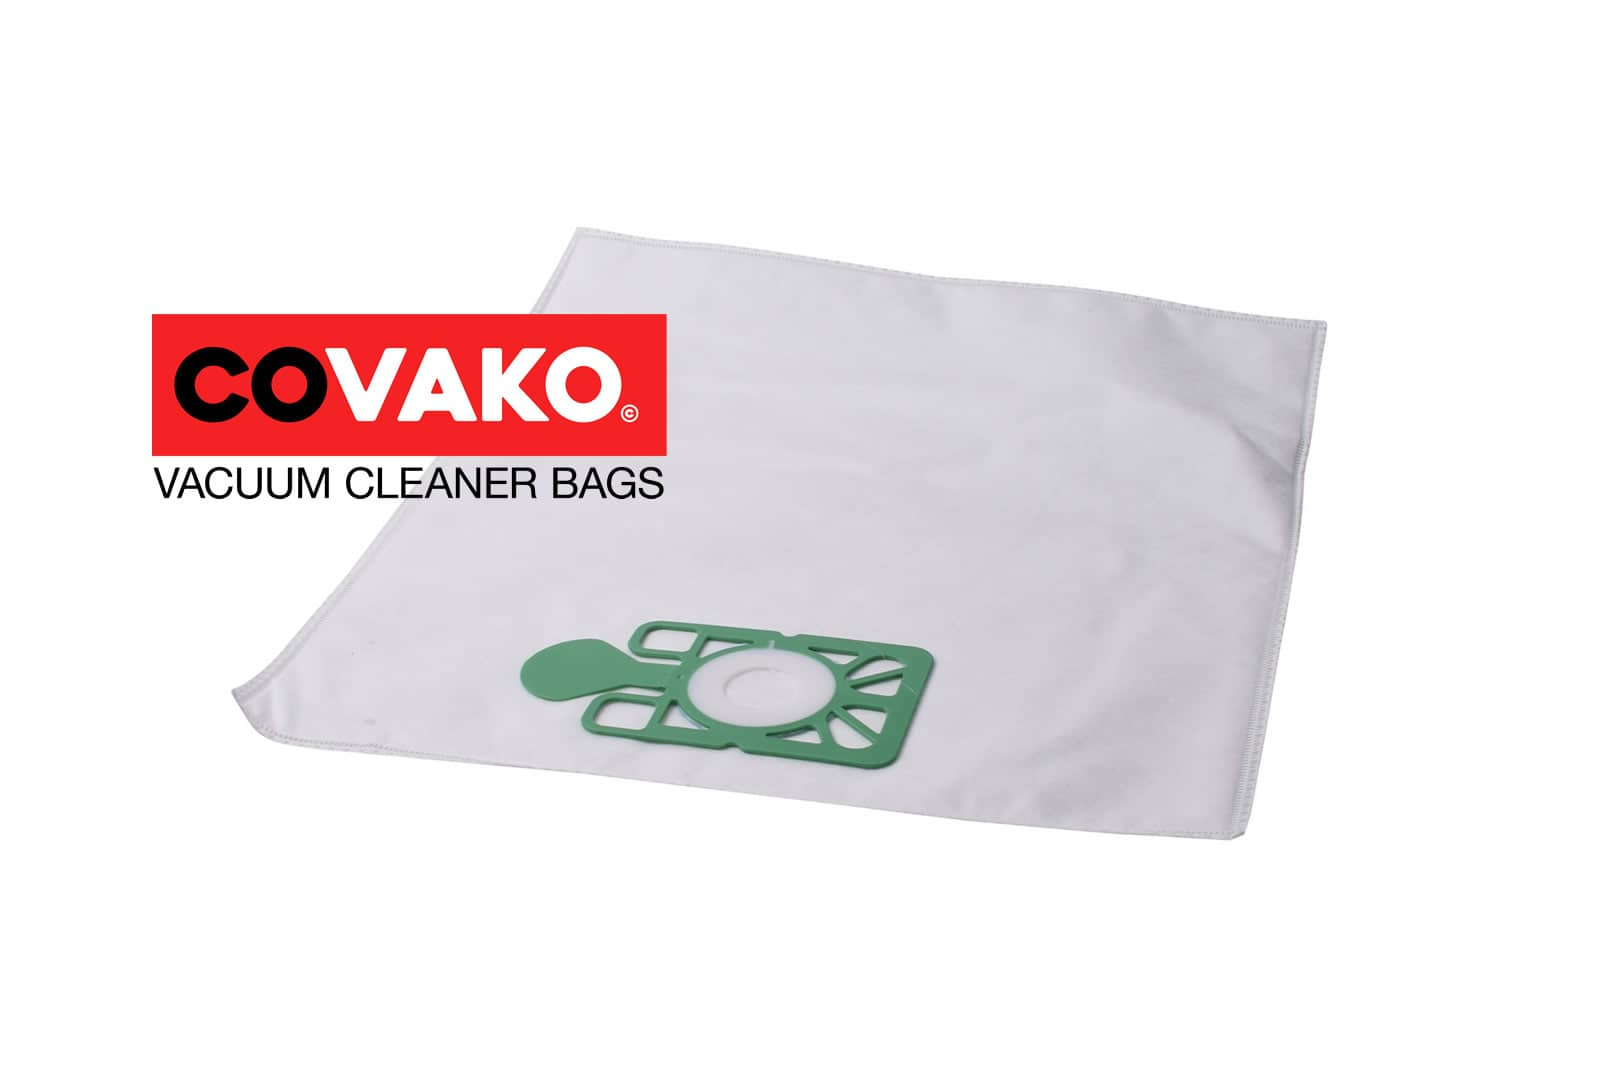 Numatic NVH 180-2 / Synthesis - Numatic vacuum cleaner bags